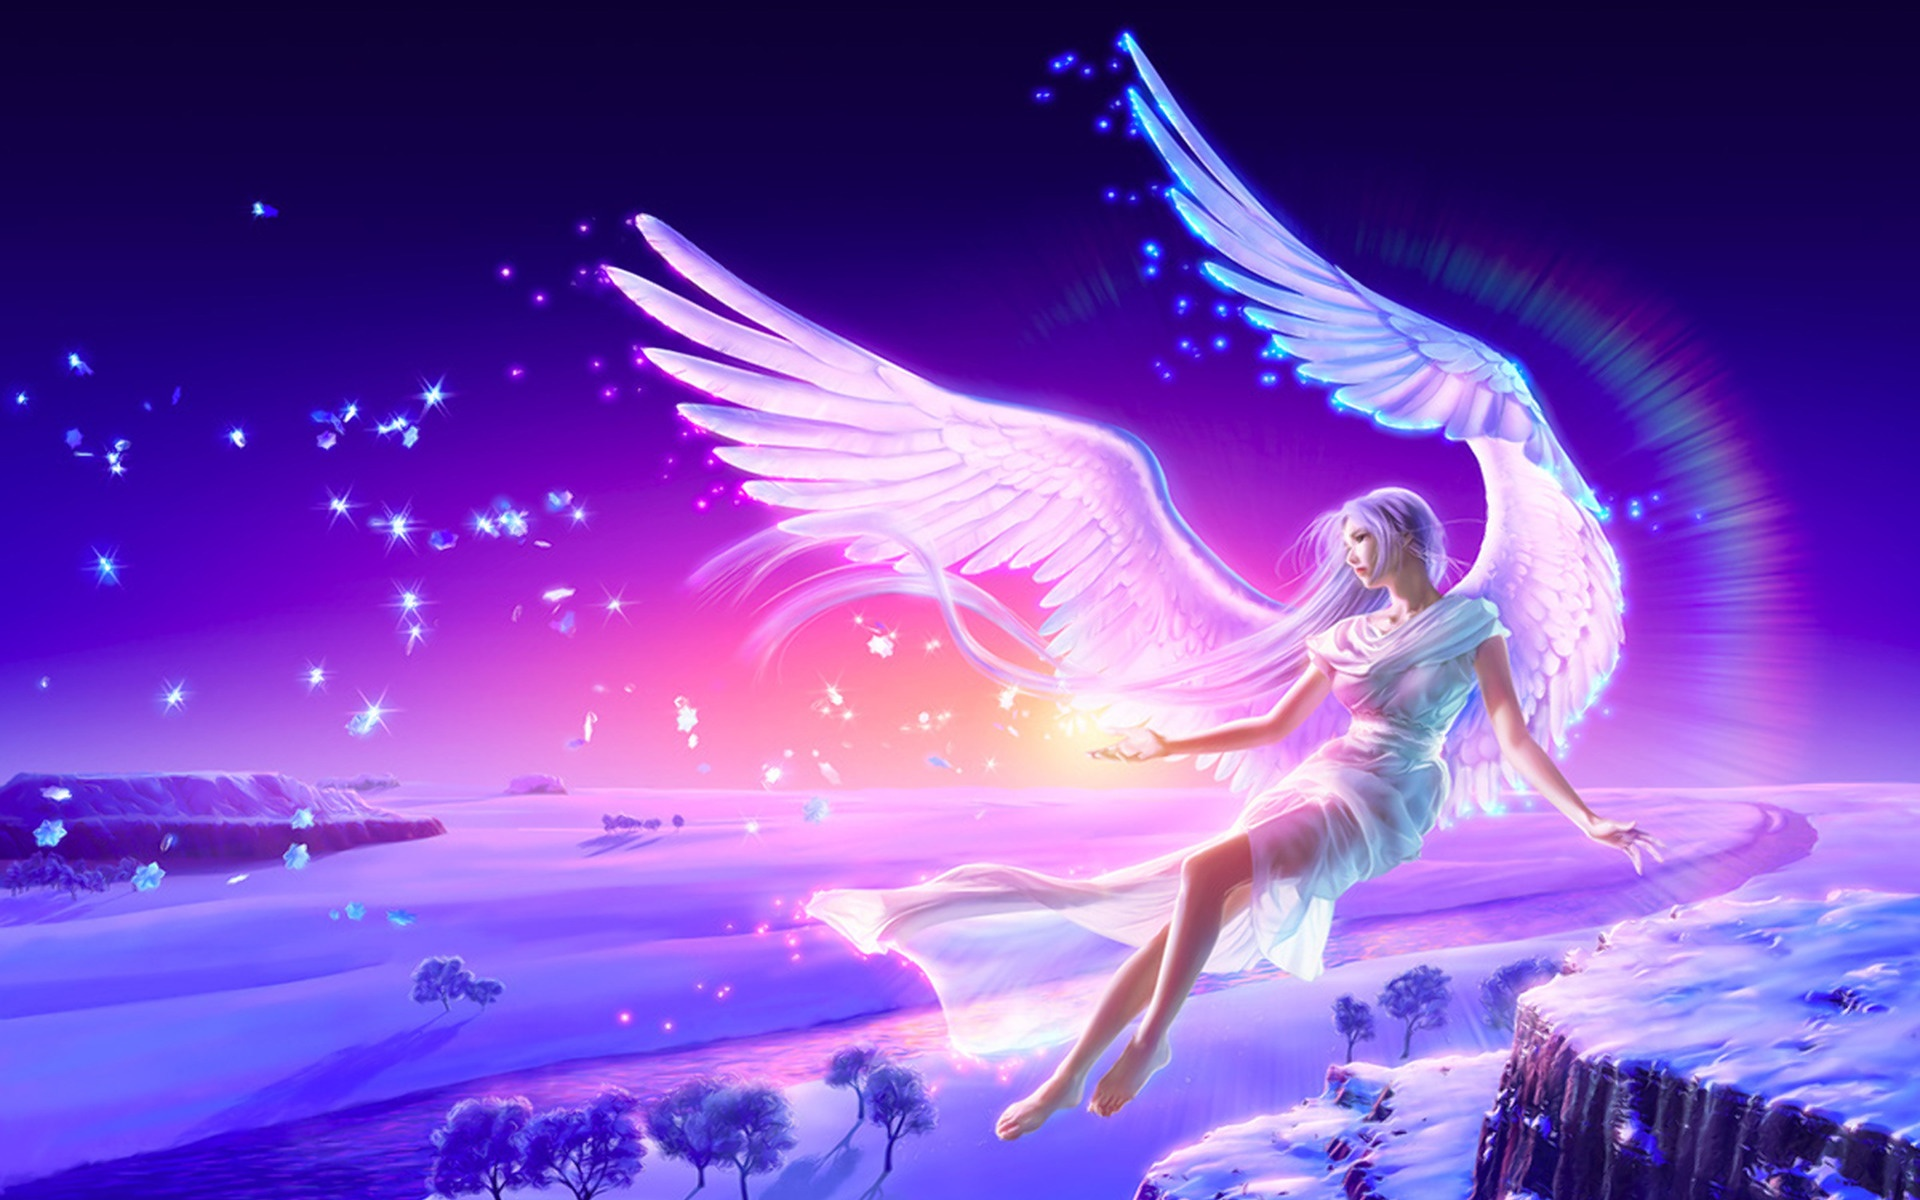 Angel Wallpapers Pictures Images HD Wallpapers Download Free Images Wallpaper [1000image.com]